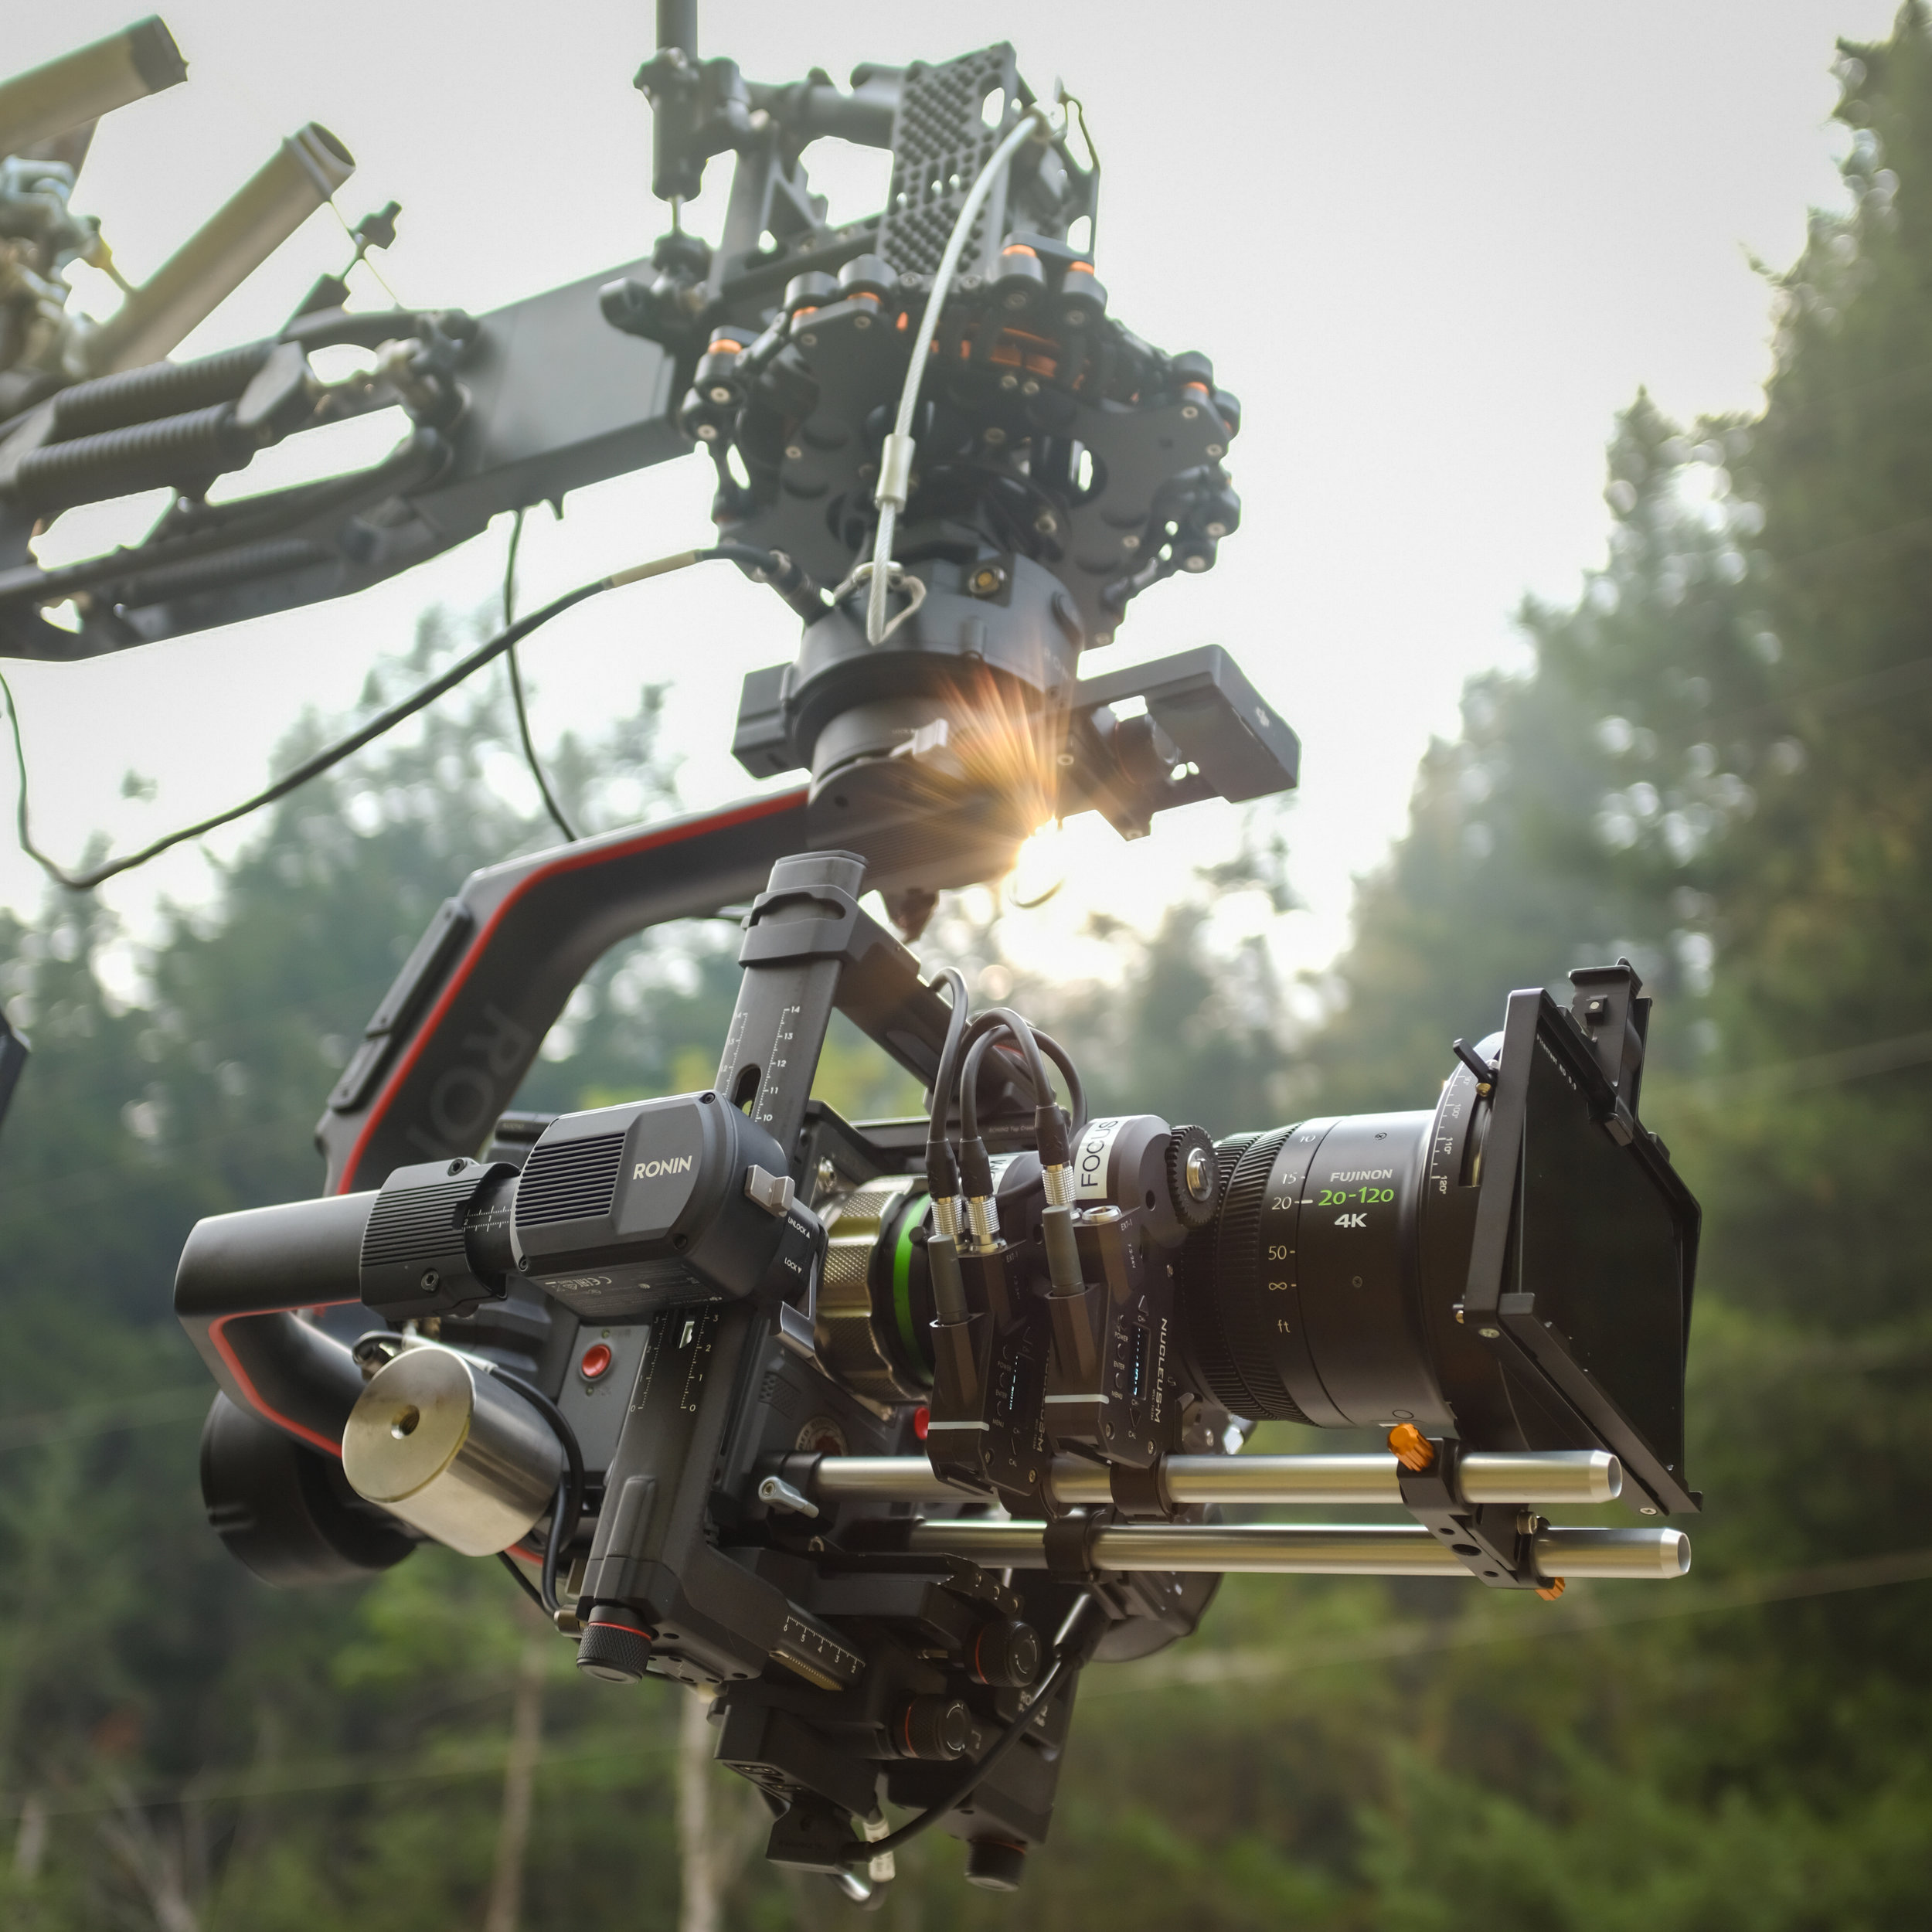 Ronin2 attached to our Black Arm with a Fujinon 20-120 Lens